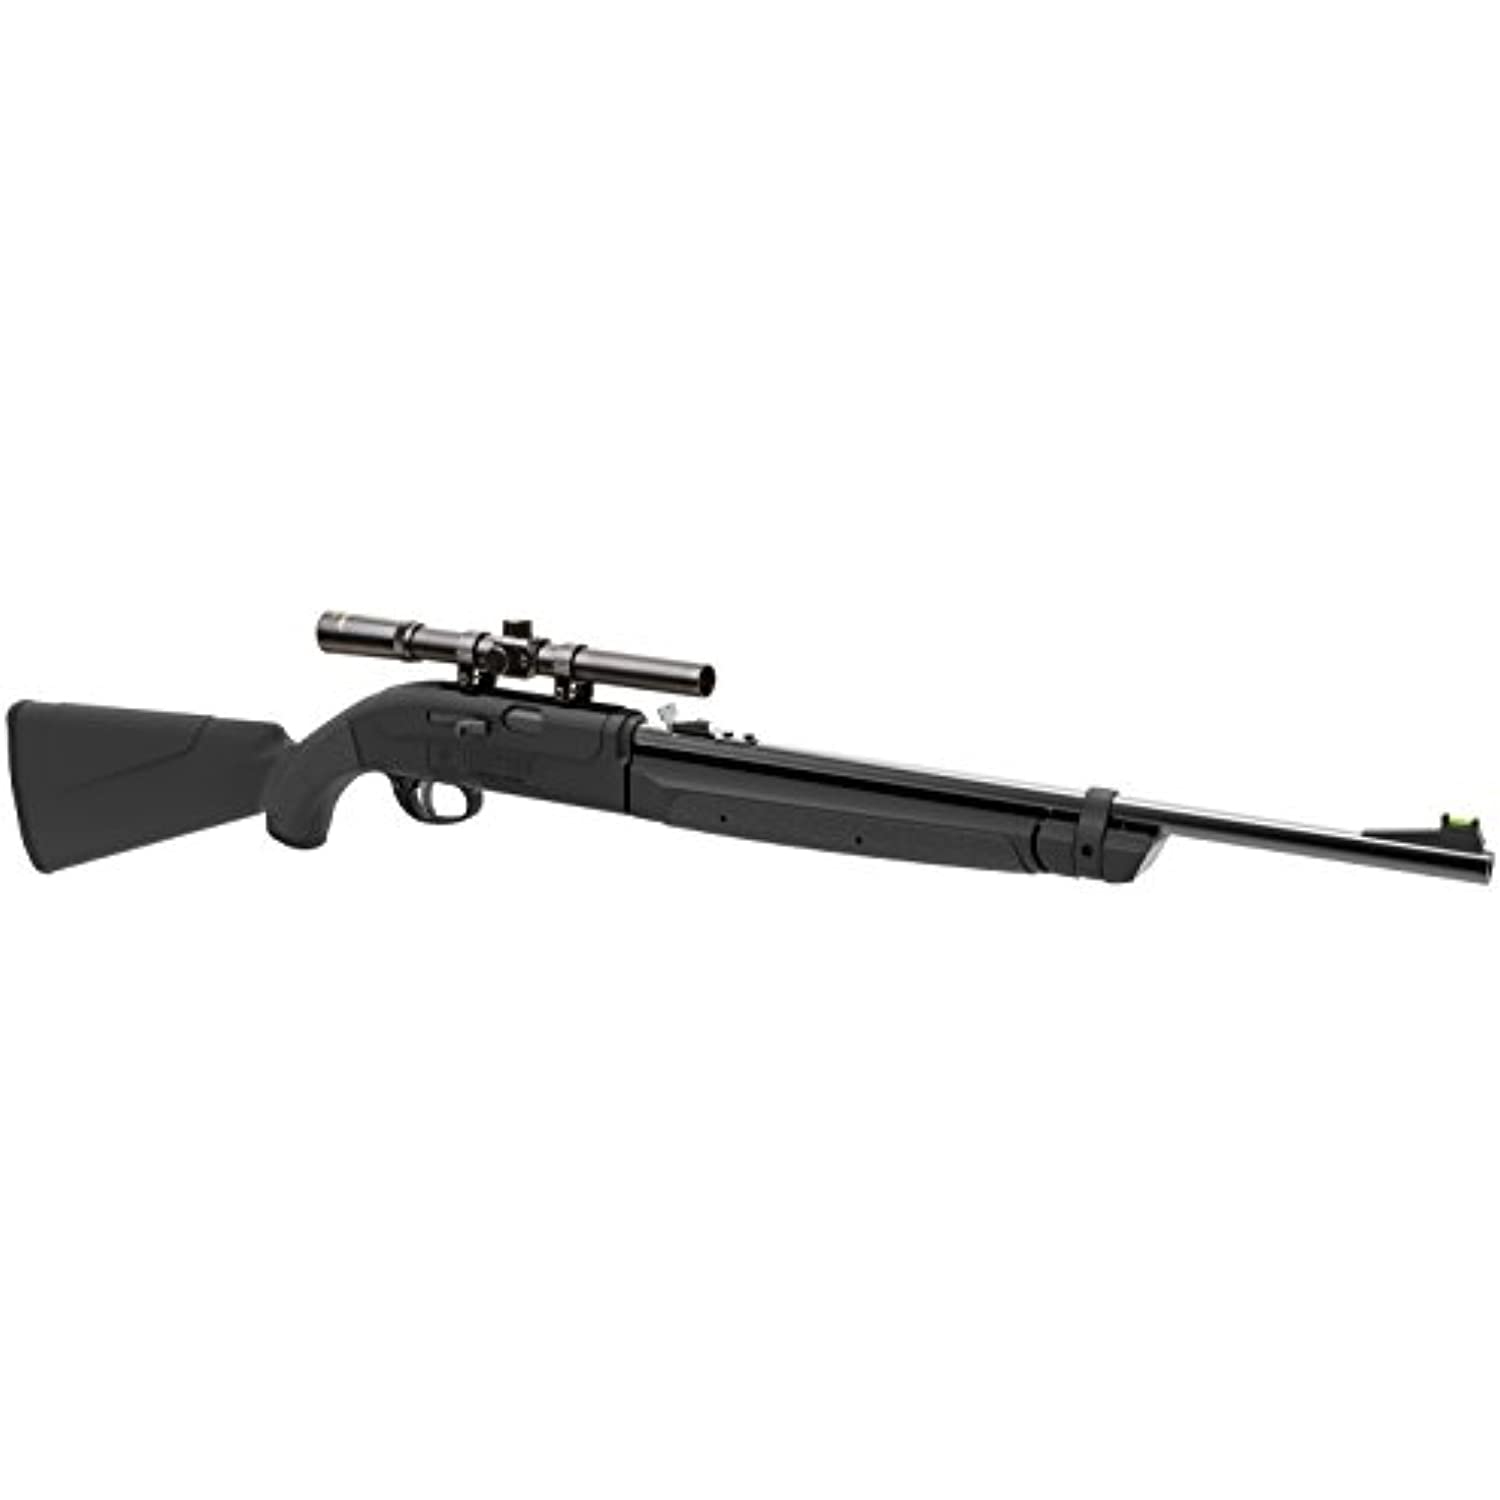 Crosman CLGY1000KT Legacy 1000 Single Shot Variable Pump .177-Caliber Pellet And BB Air Rifle With 4 x 15 mm Scope, Black